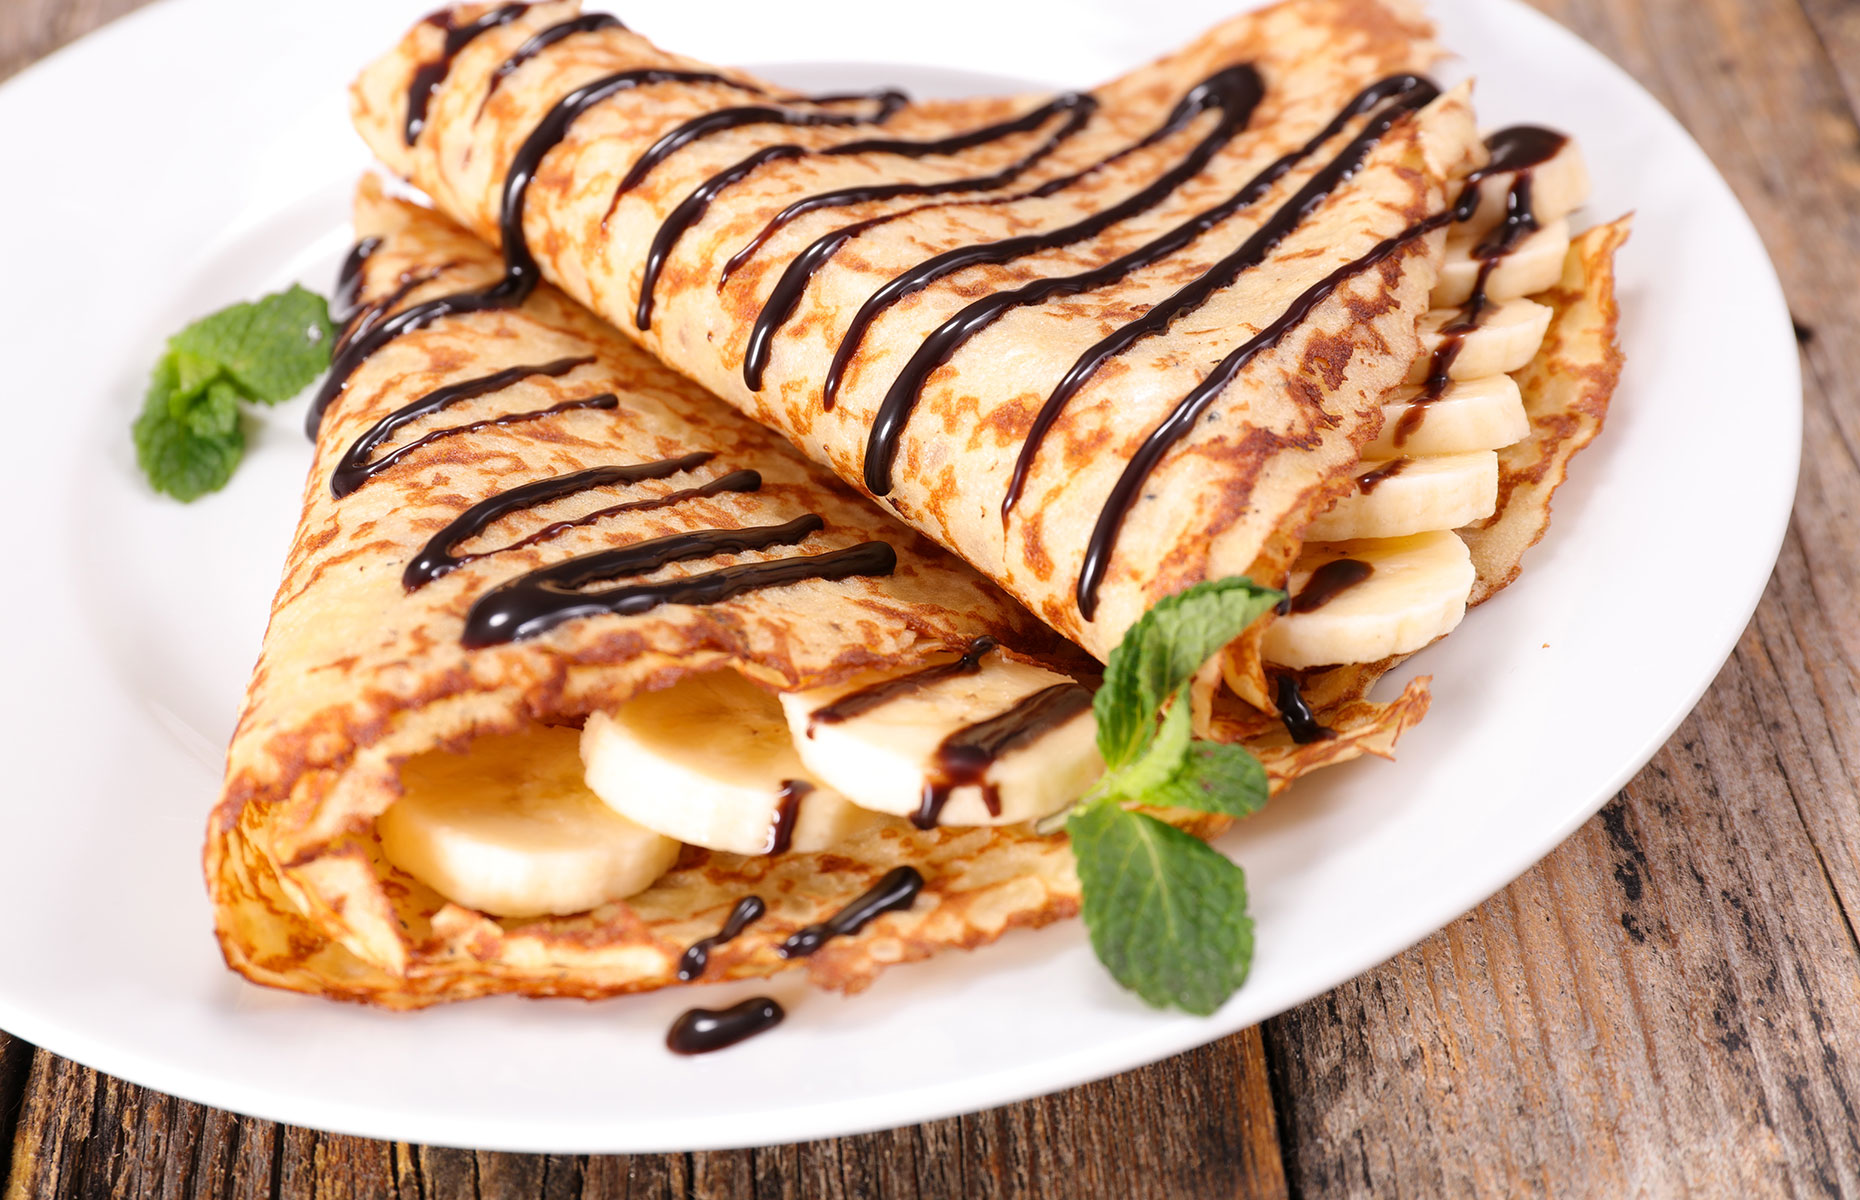 French crepes (Image: margouillat photo/Shutterstock)